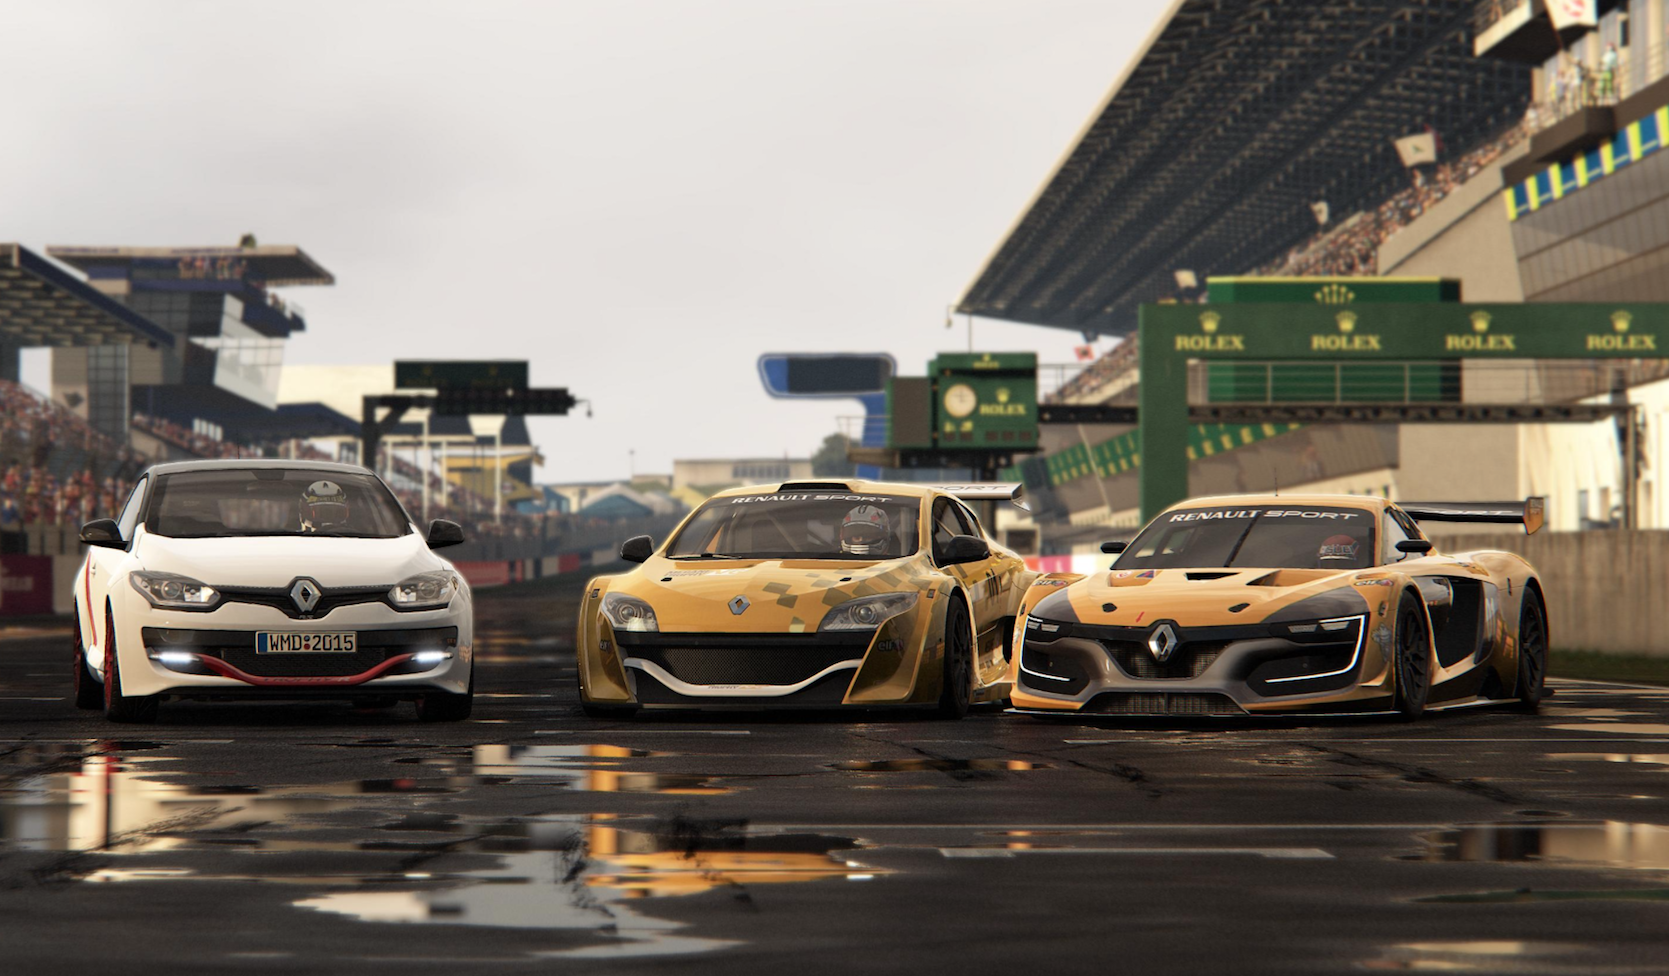 PROJECT CARS LAUNCHES ITS RENAULT SPORT CAR PACK